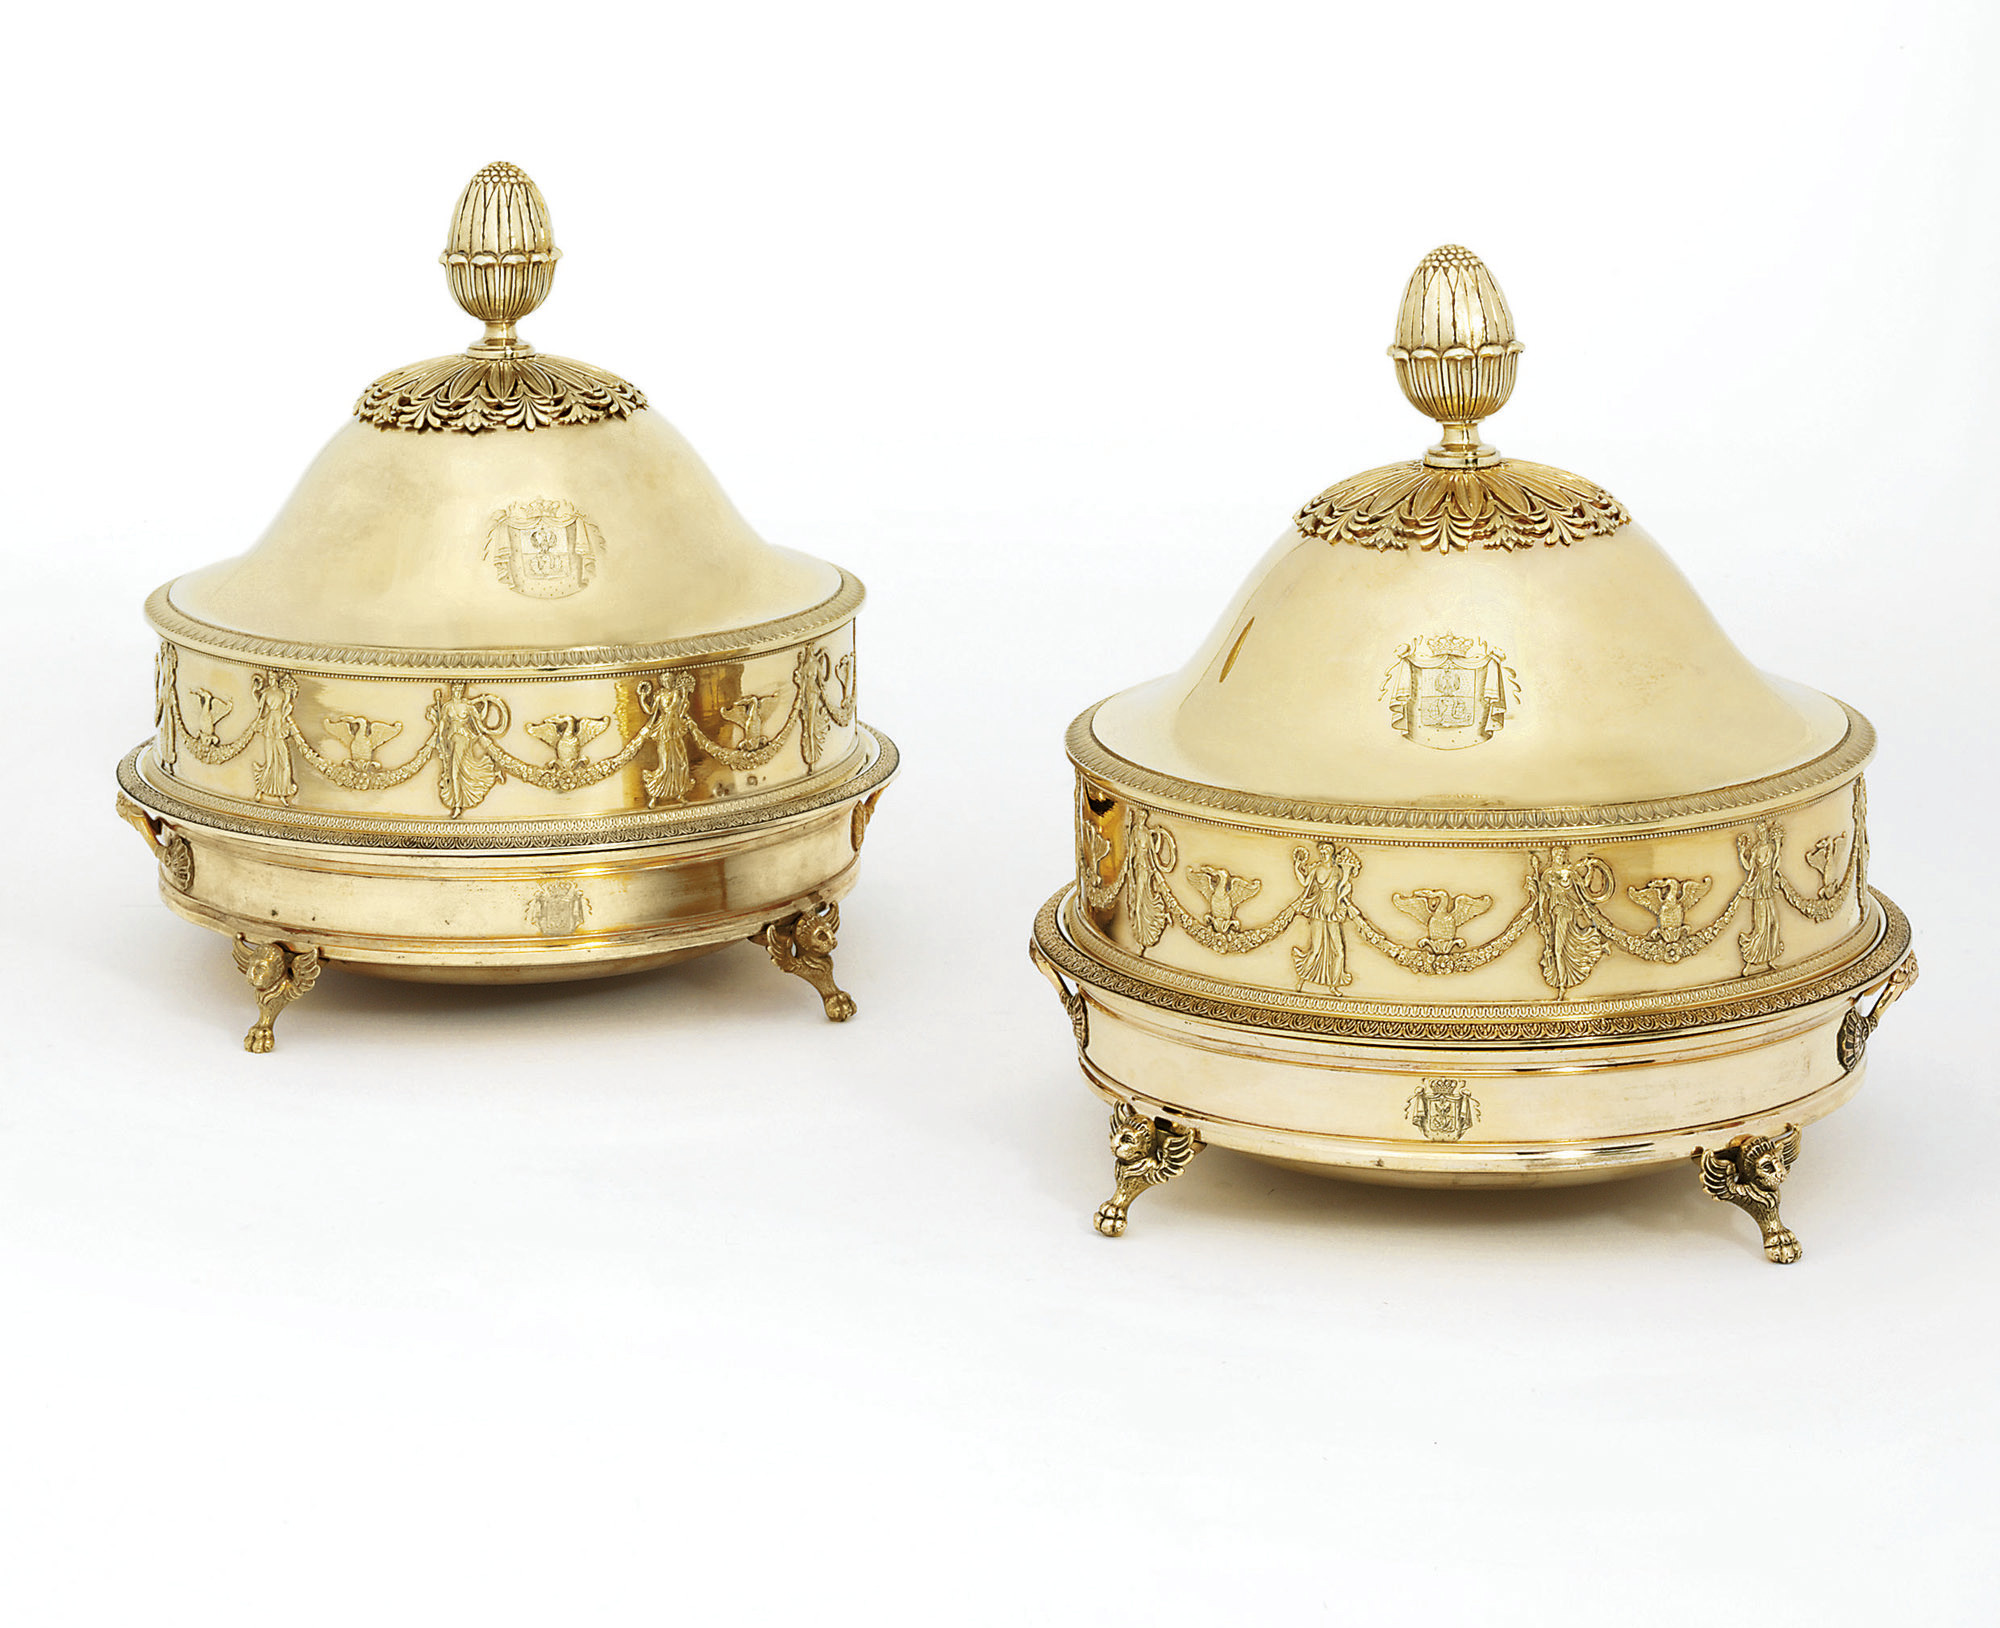 A PAIR OF FRENCH EMPIRE SILVER-GILT DISHES, COVERS AND COPPER-GILT STANDS FROM THE BORGHESE SERVICE